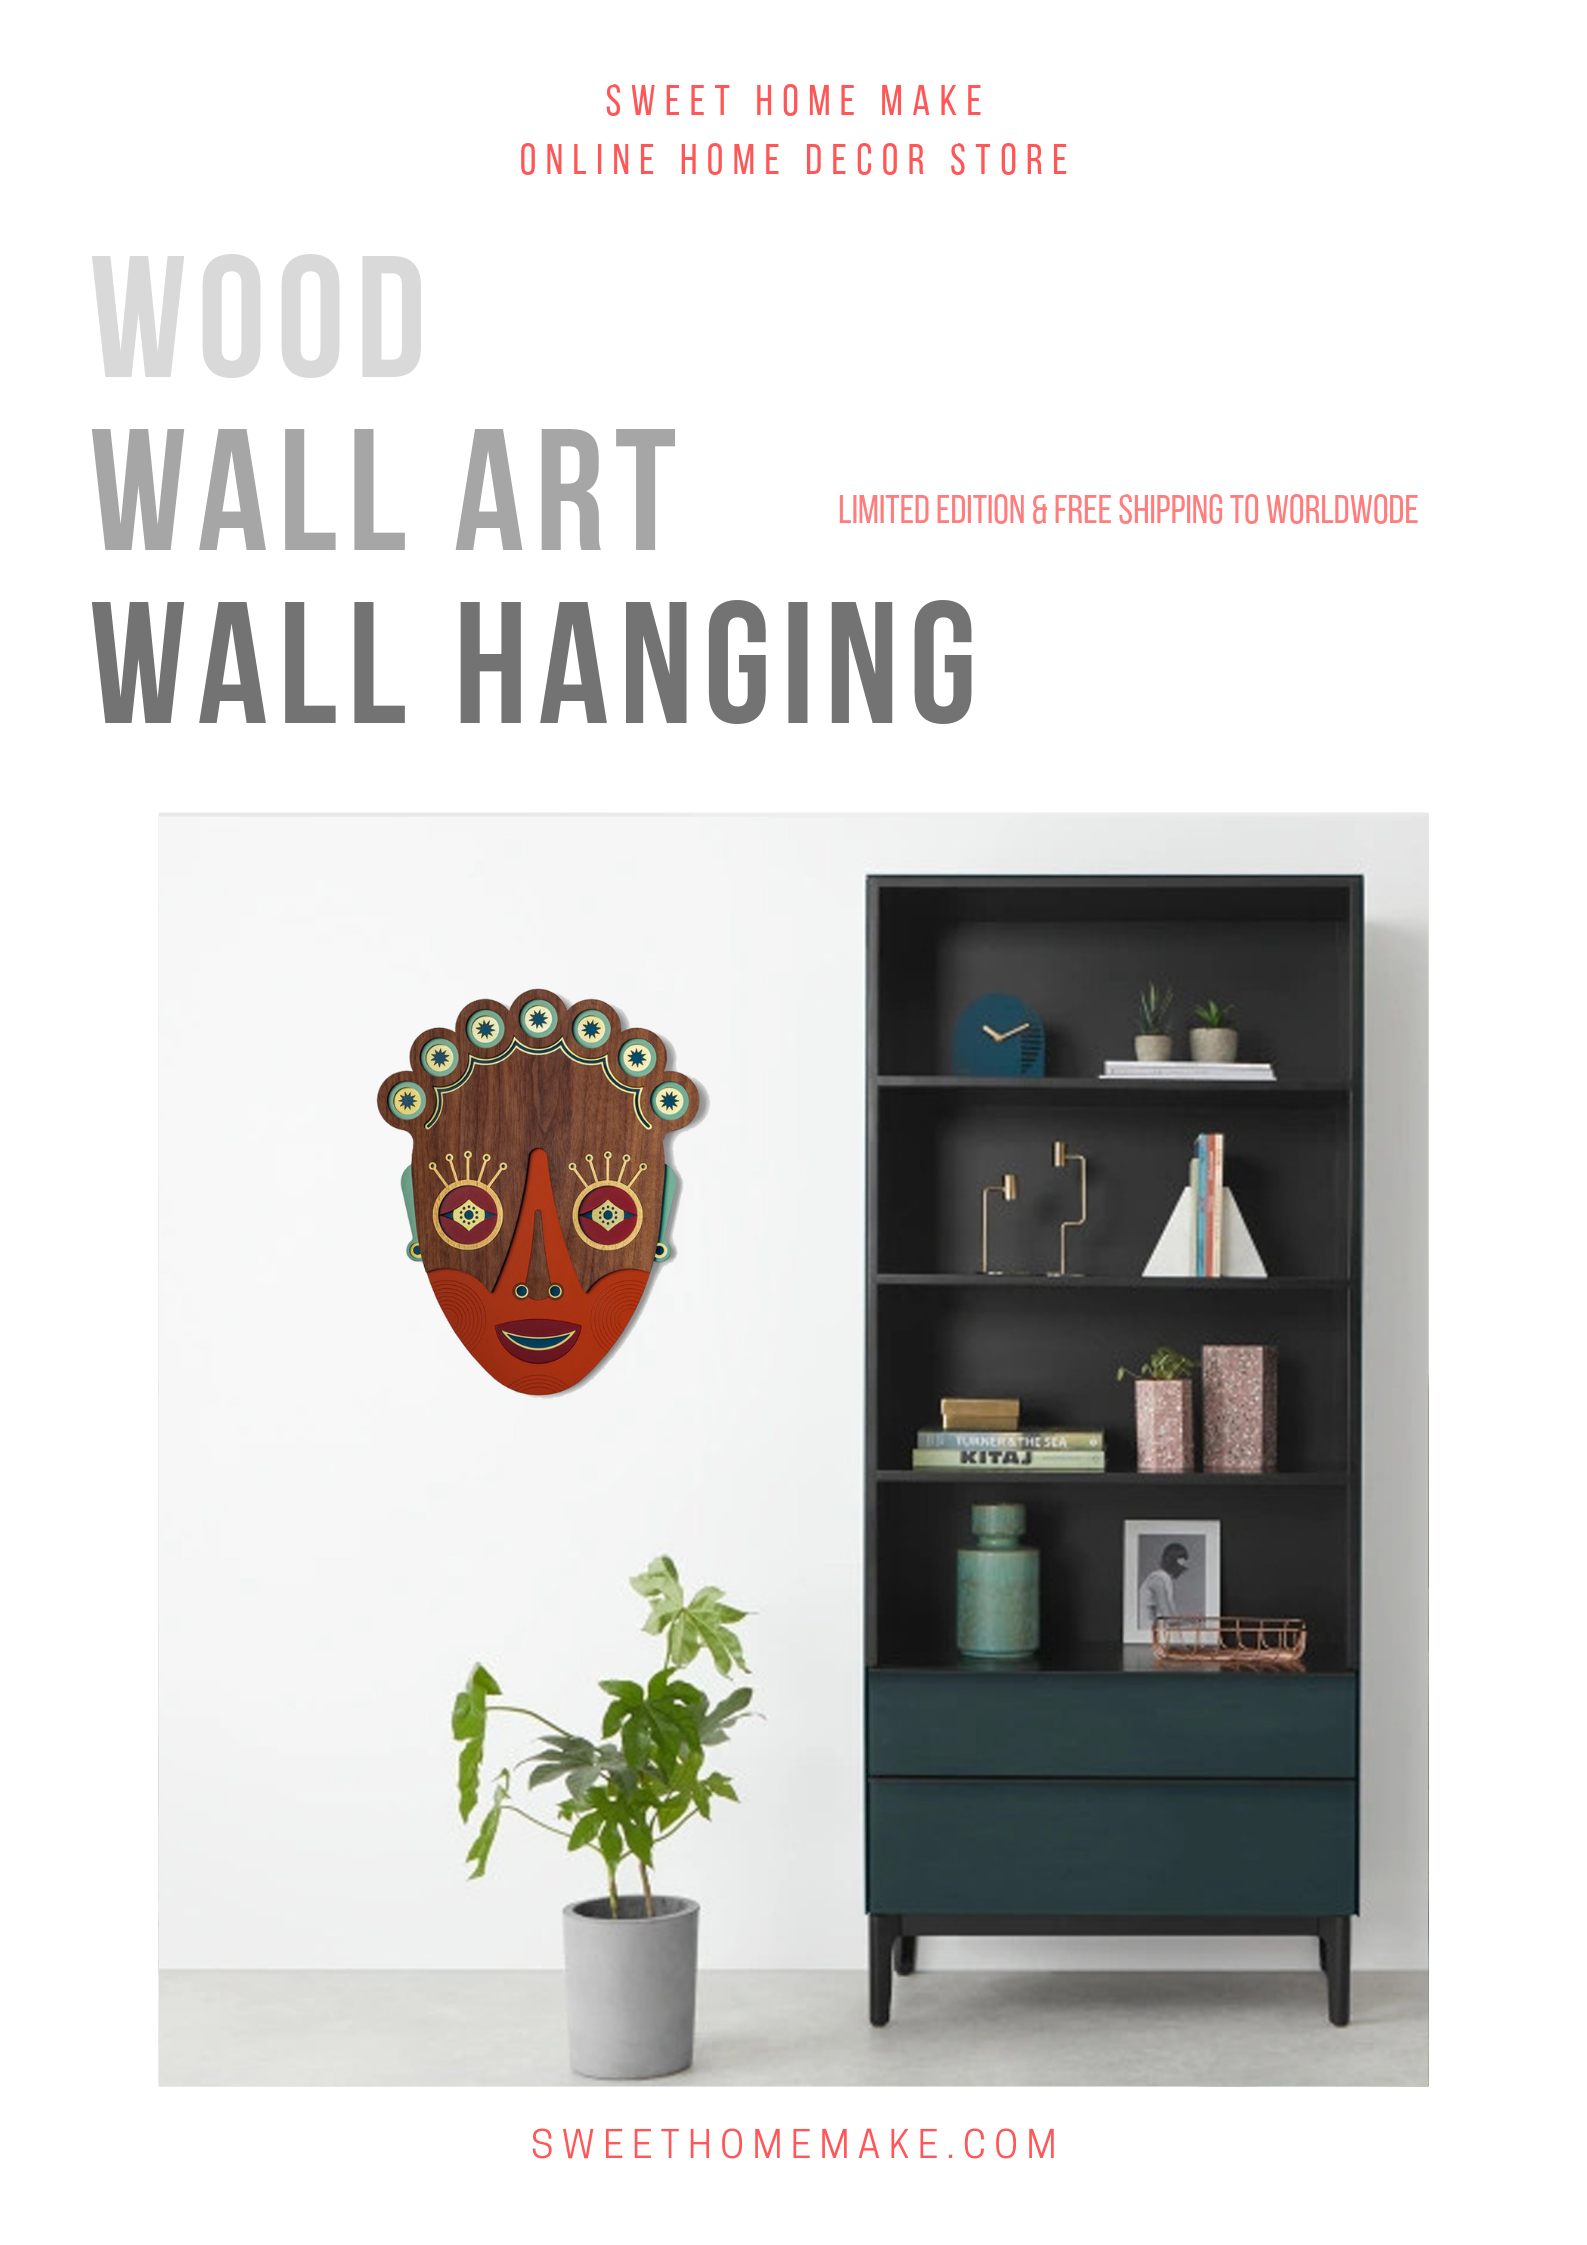 Chic Wall Decor with African Mask Wood Wall Art